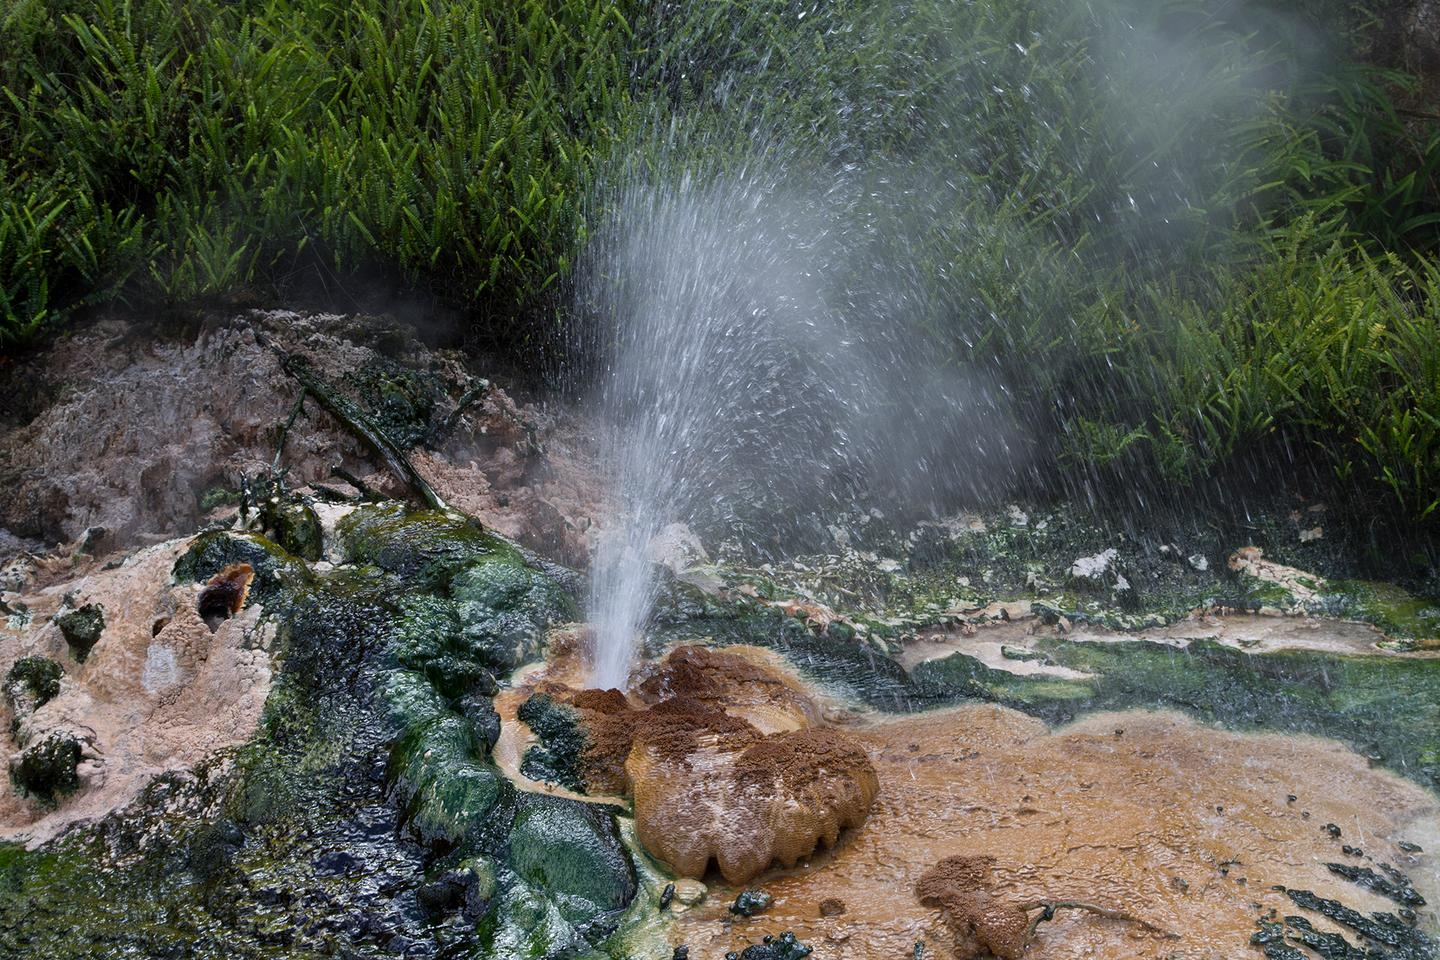 RUB researchers have developed a bio-based solar cell using cyanobacteria found in hot springs (Photo: Noel McKeegan)